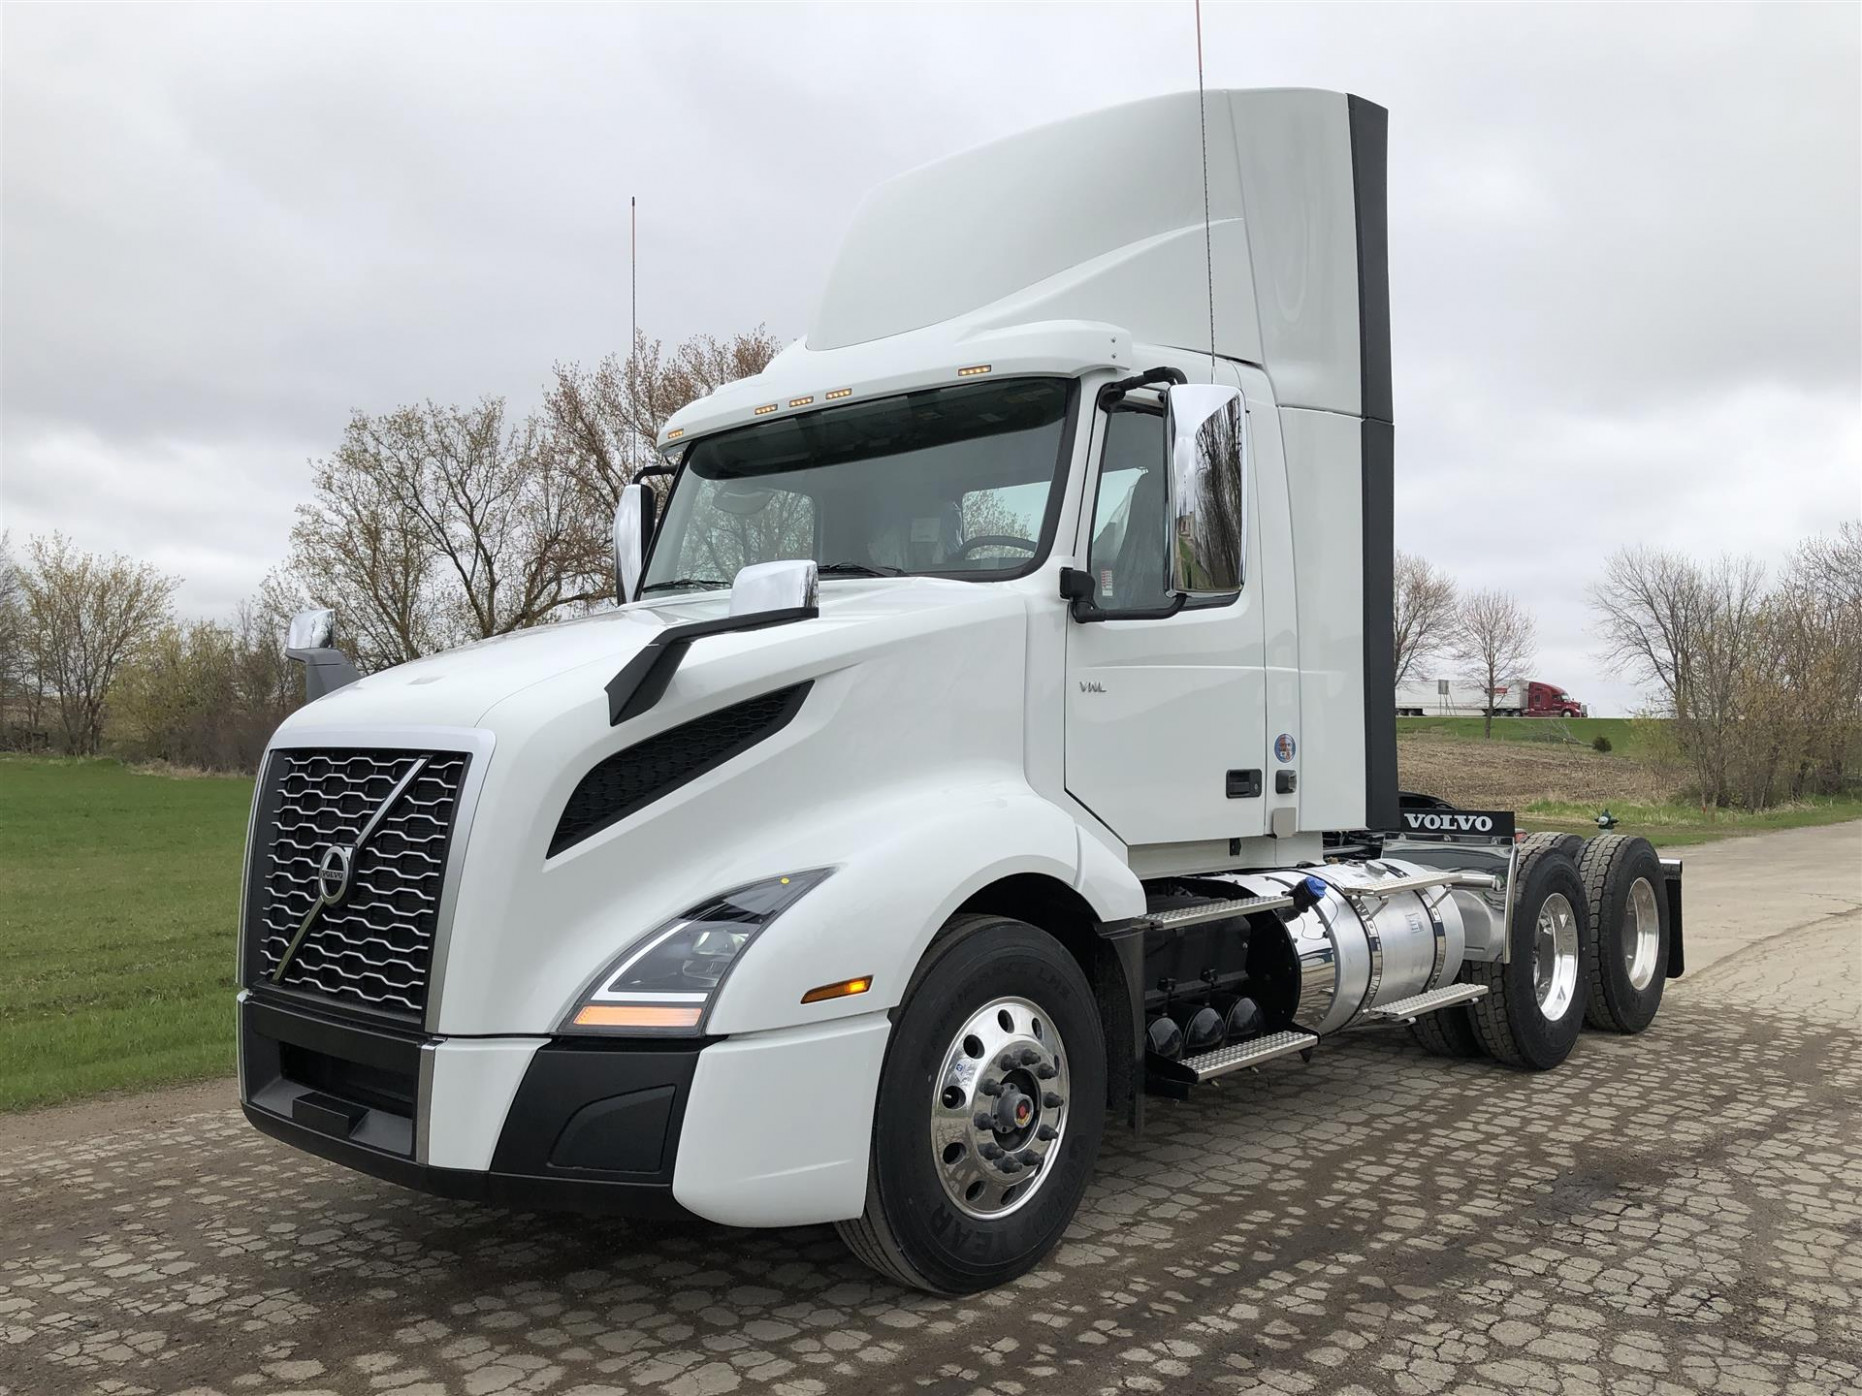 6 Volvo VNL6T6 (For Sale) | Day Cab | #6684 - 2020 volvo for sale